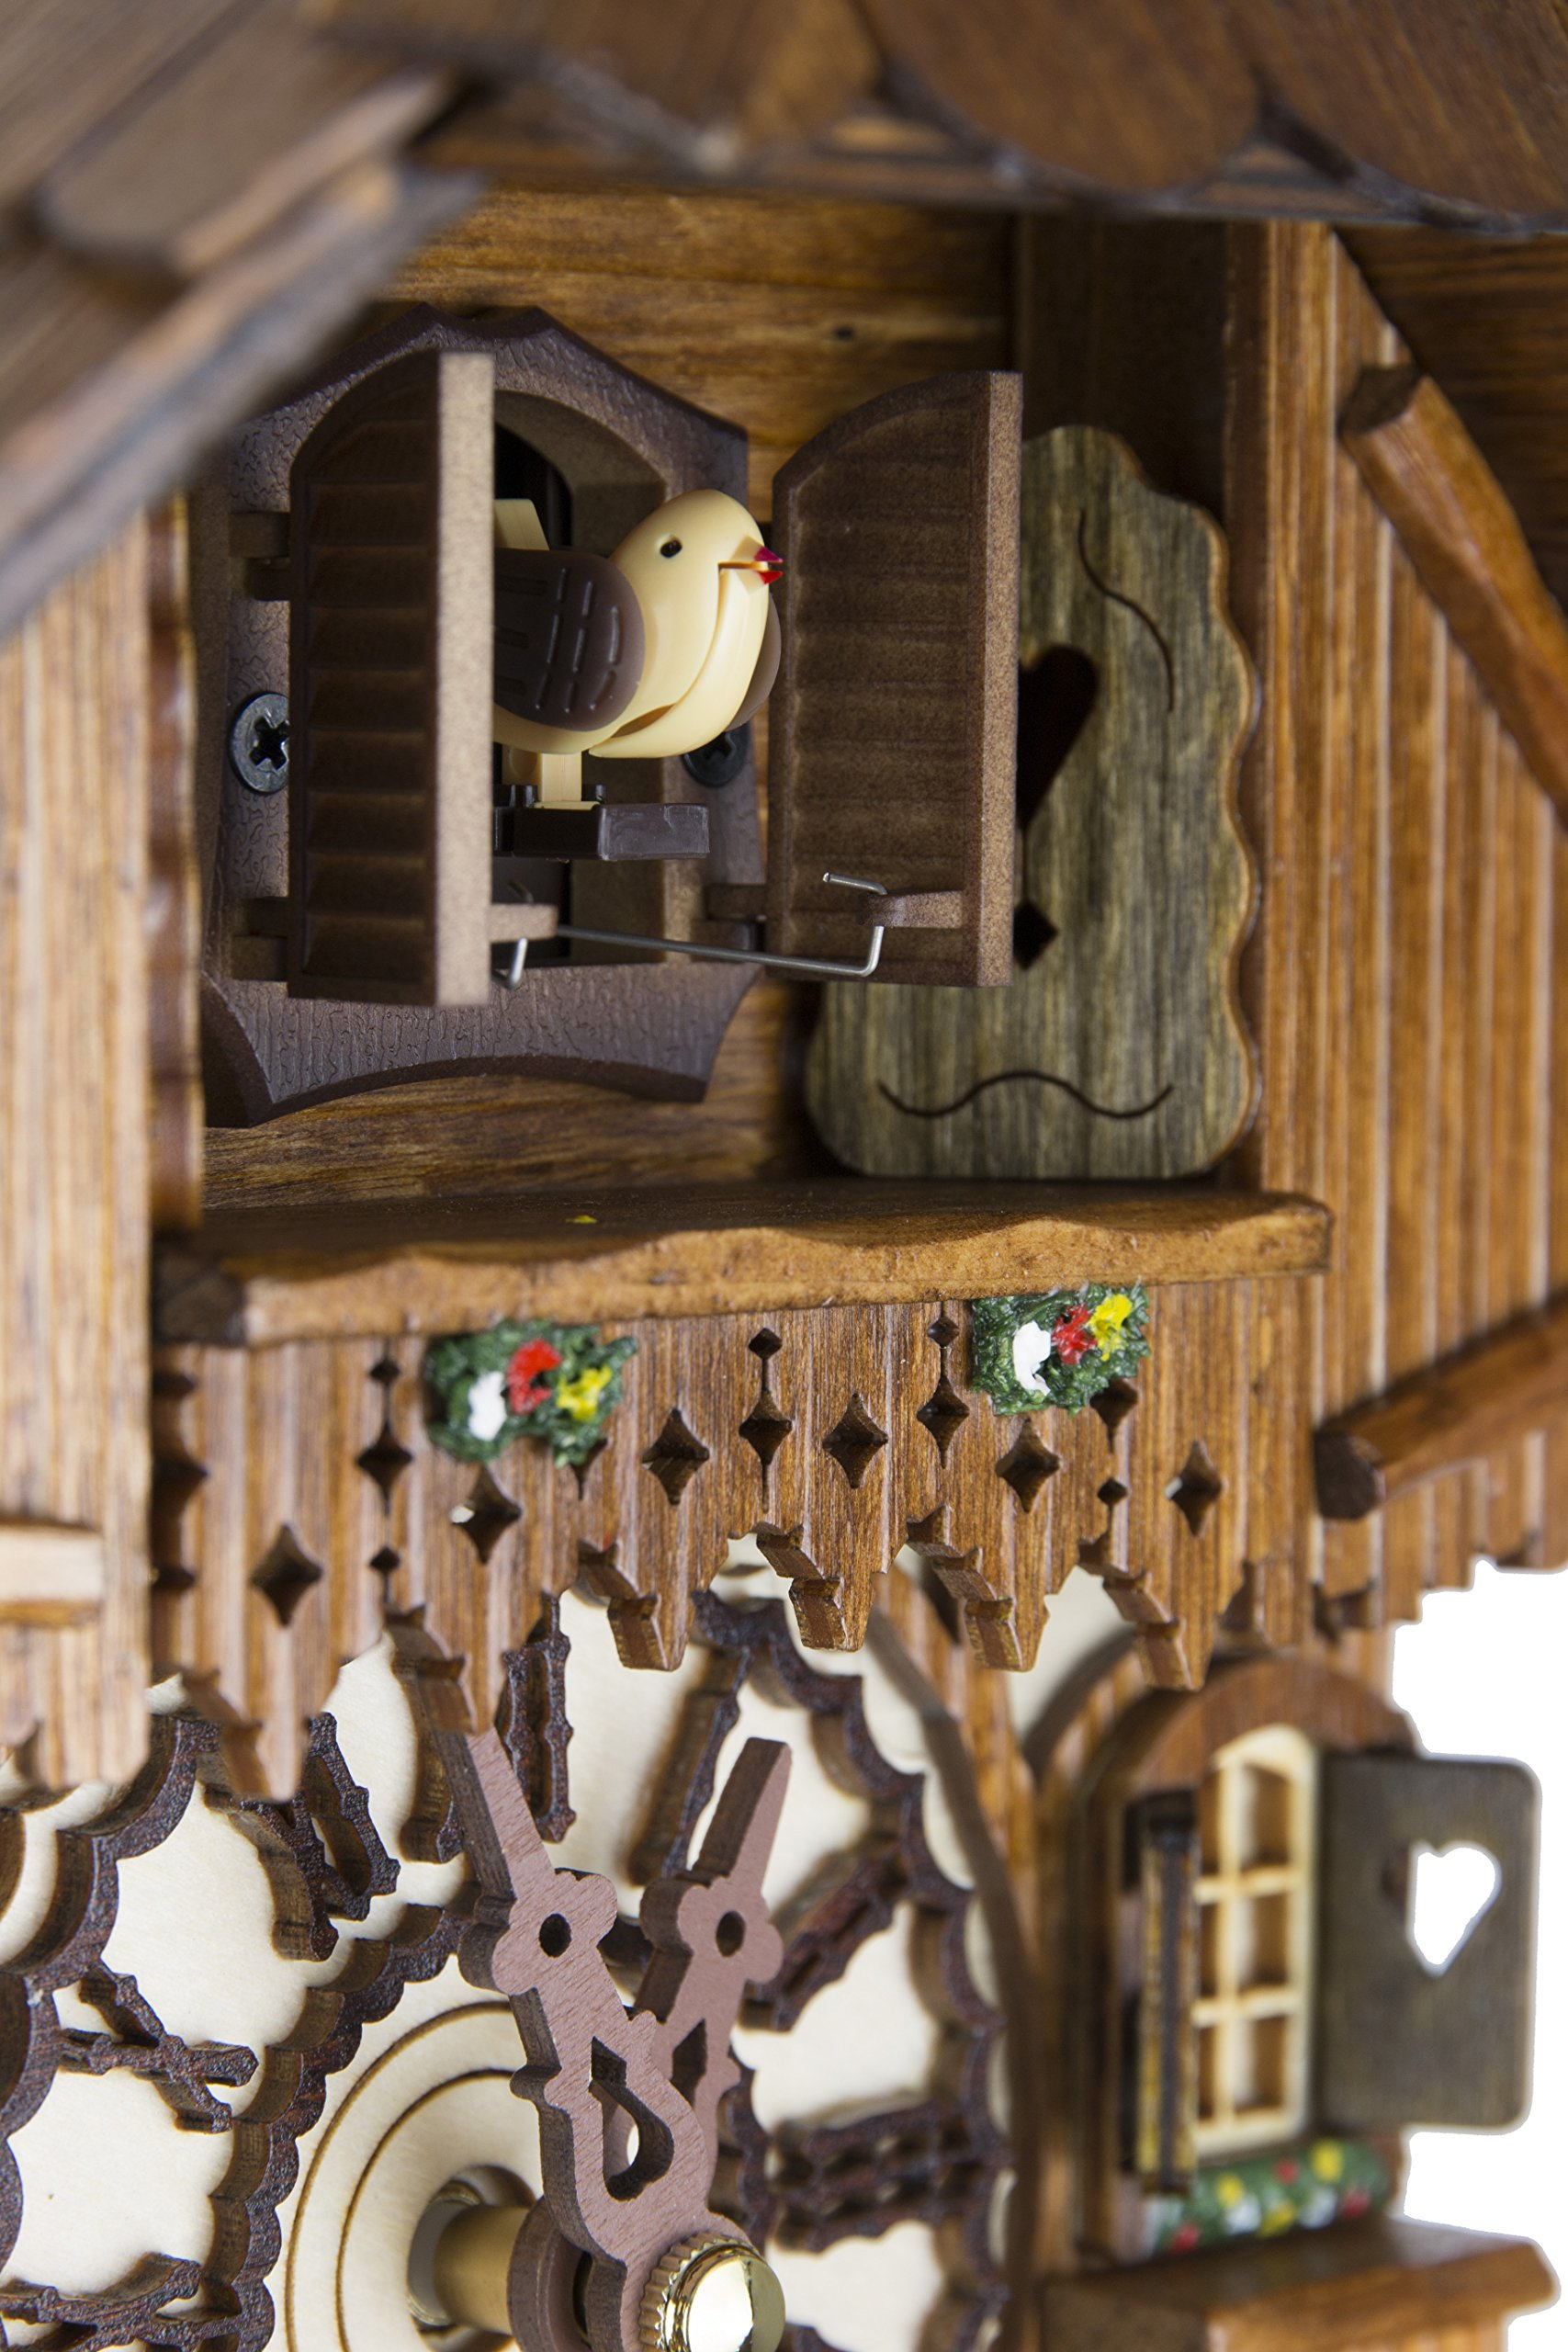 German Cuckoo Clock - Blackforest Hillside Chalet with wonderful animals - BY CUCKOO-PALACE with quartz movement - 10 1/4 inches height by Cuckoo-Palace (Image #4)